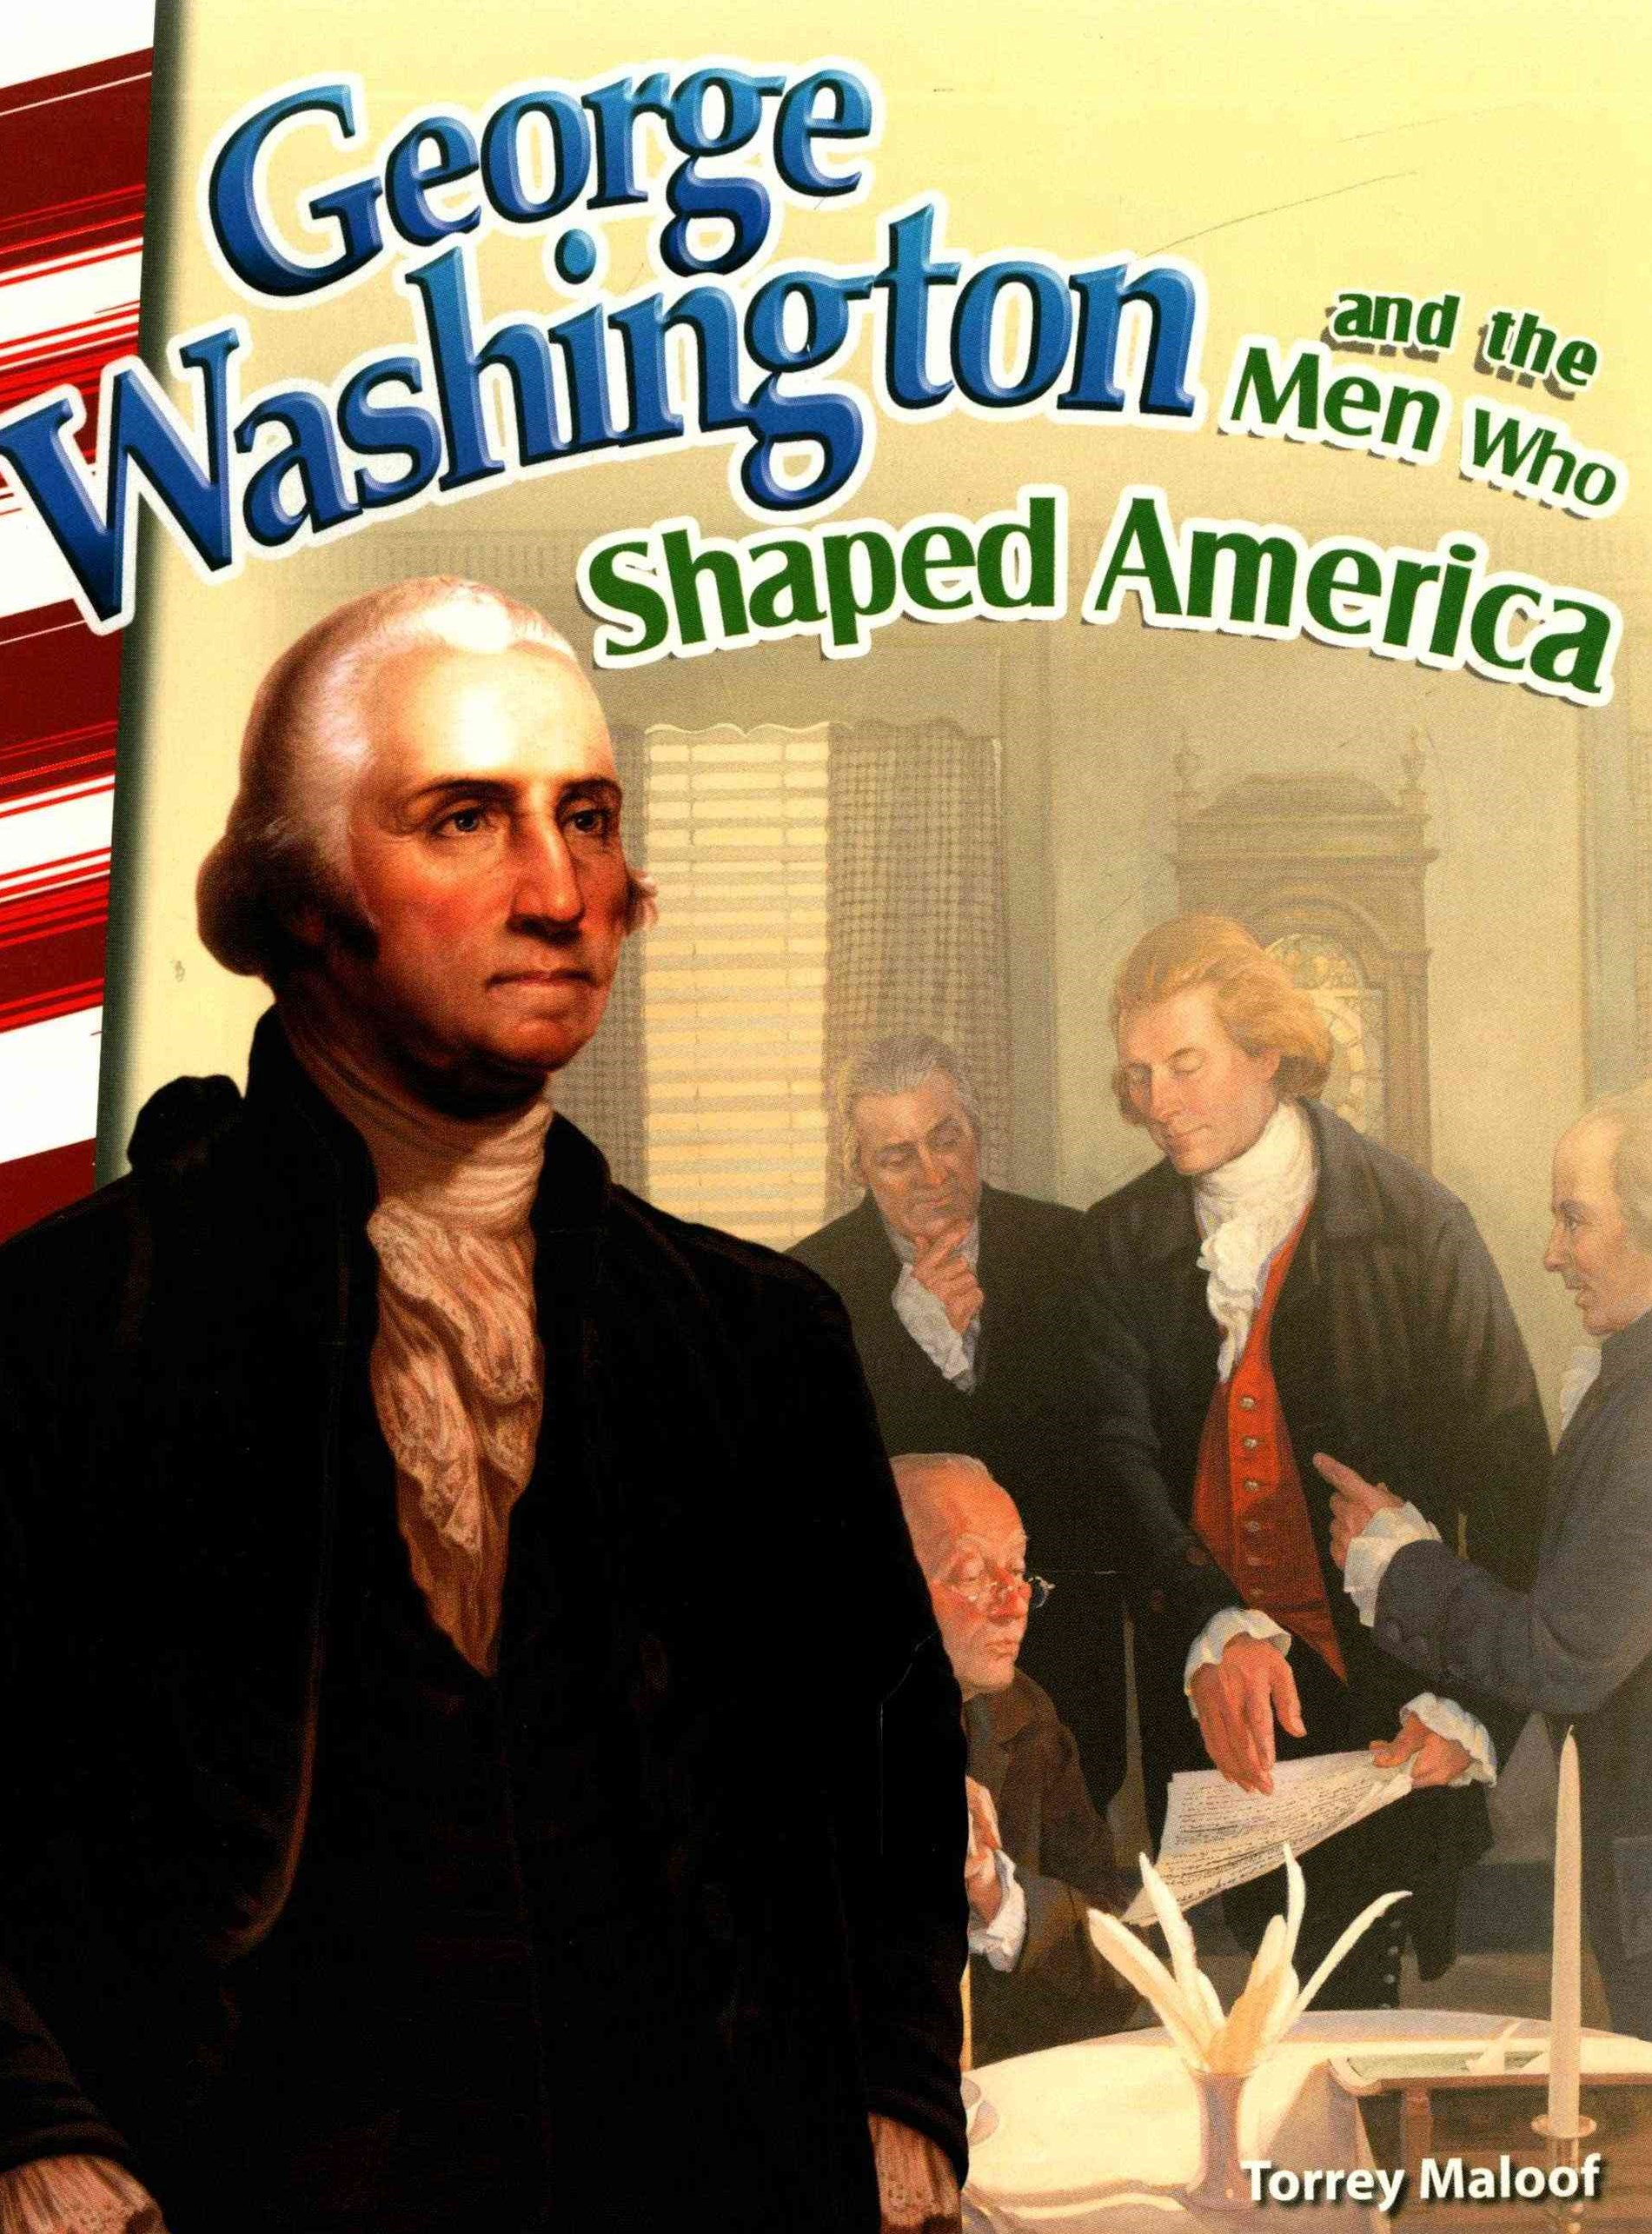 George Washington and the Men Who Shaped America